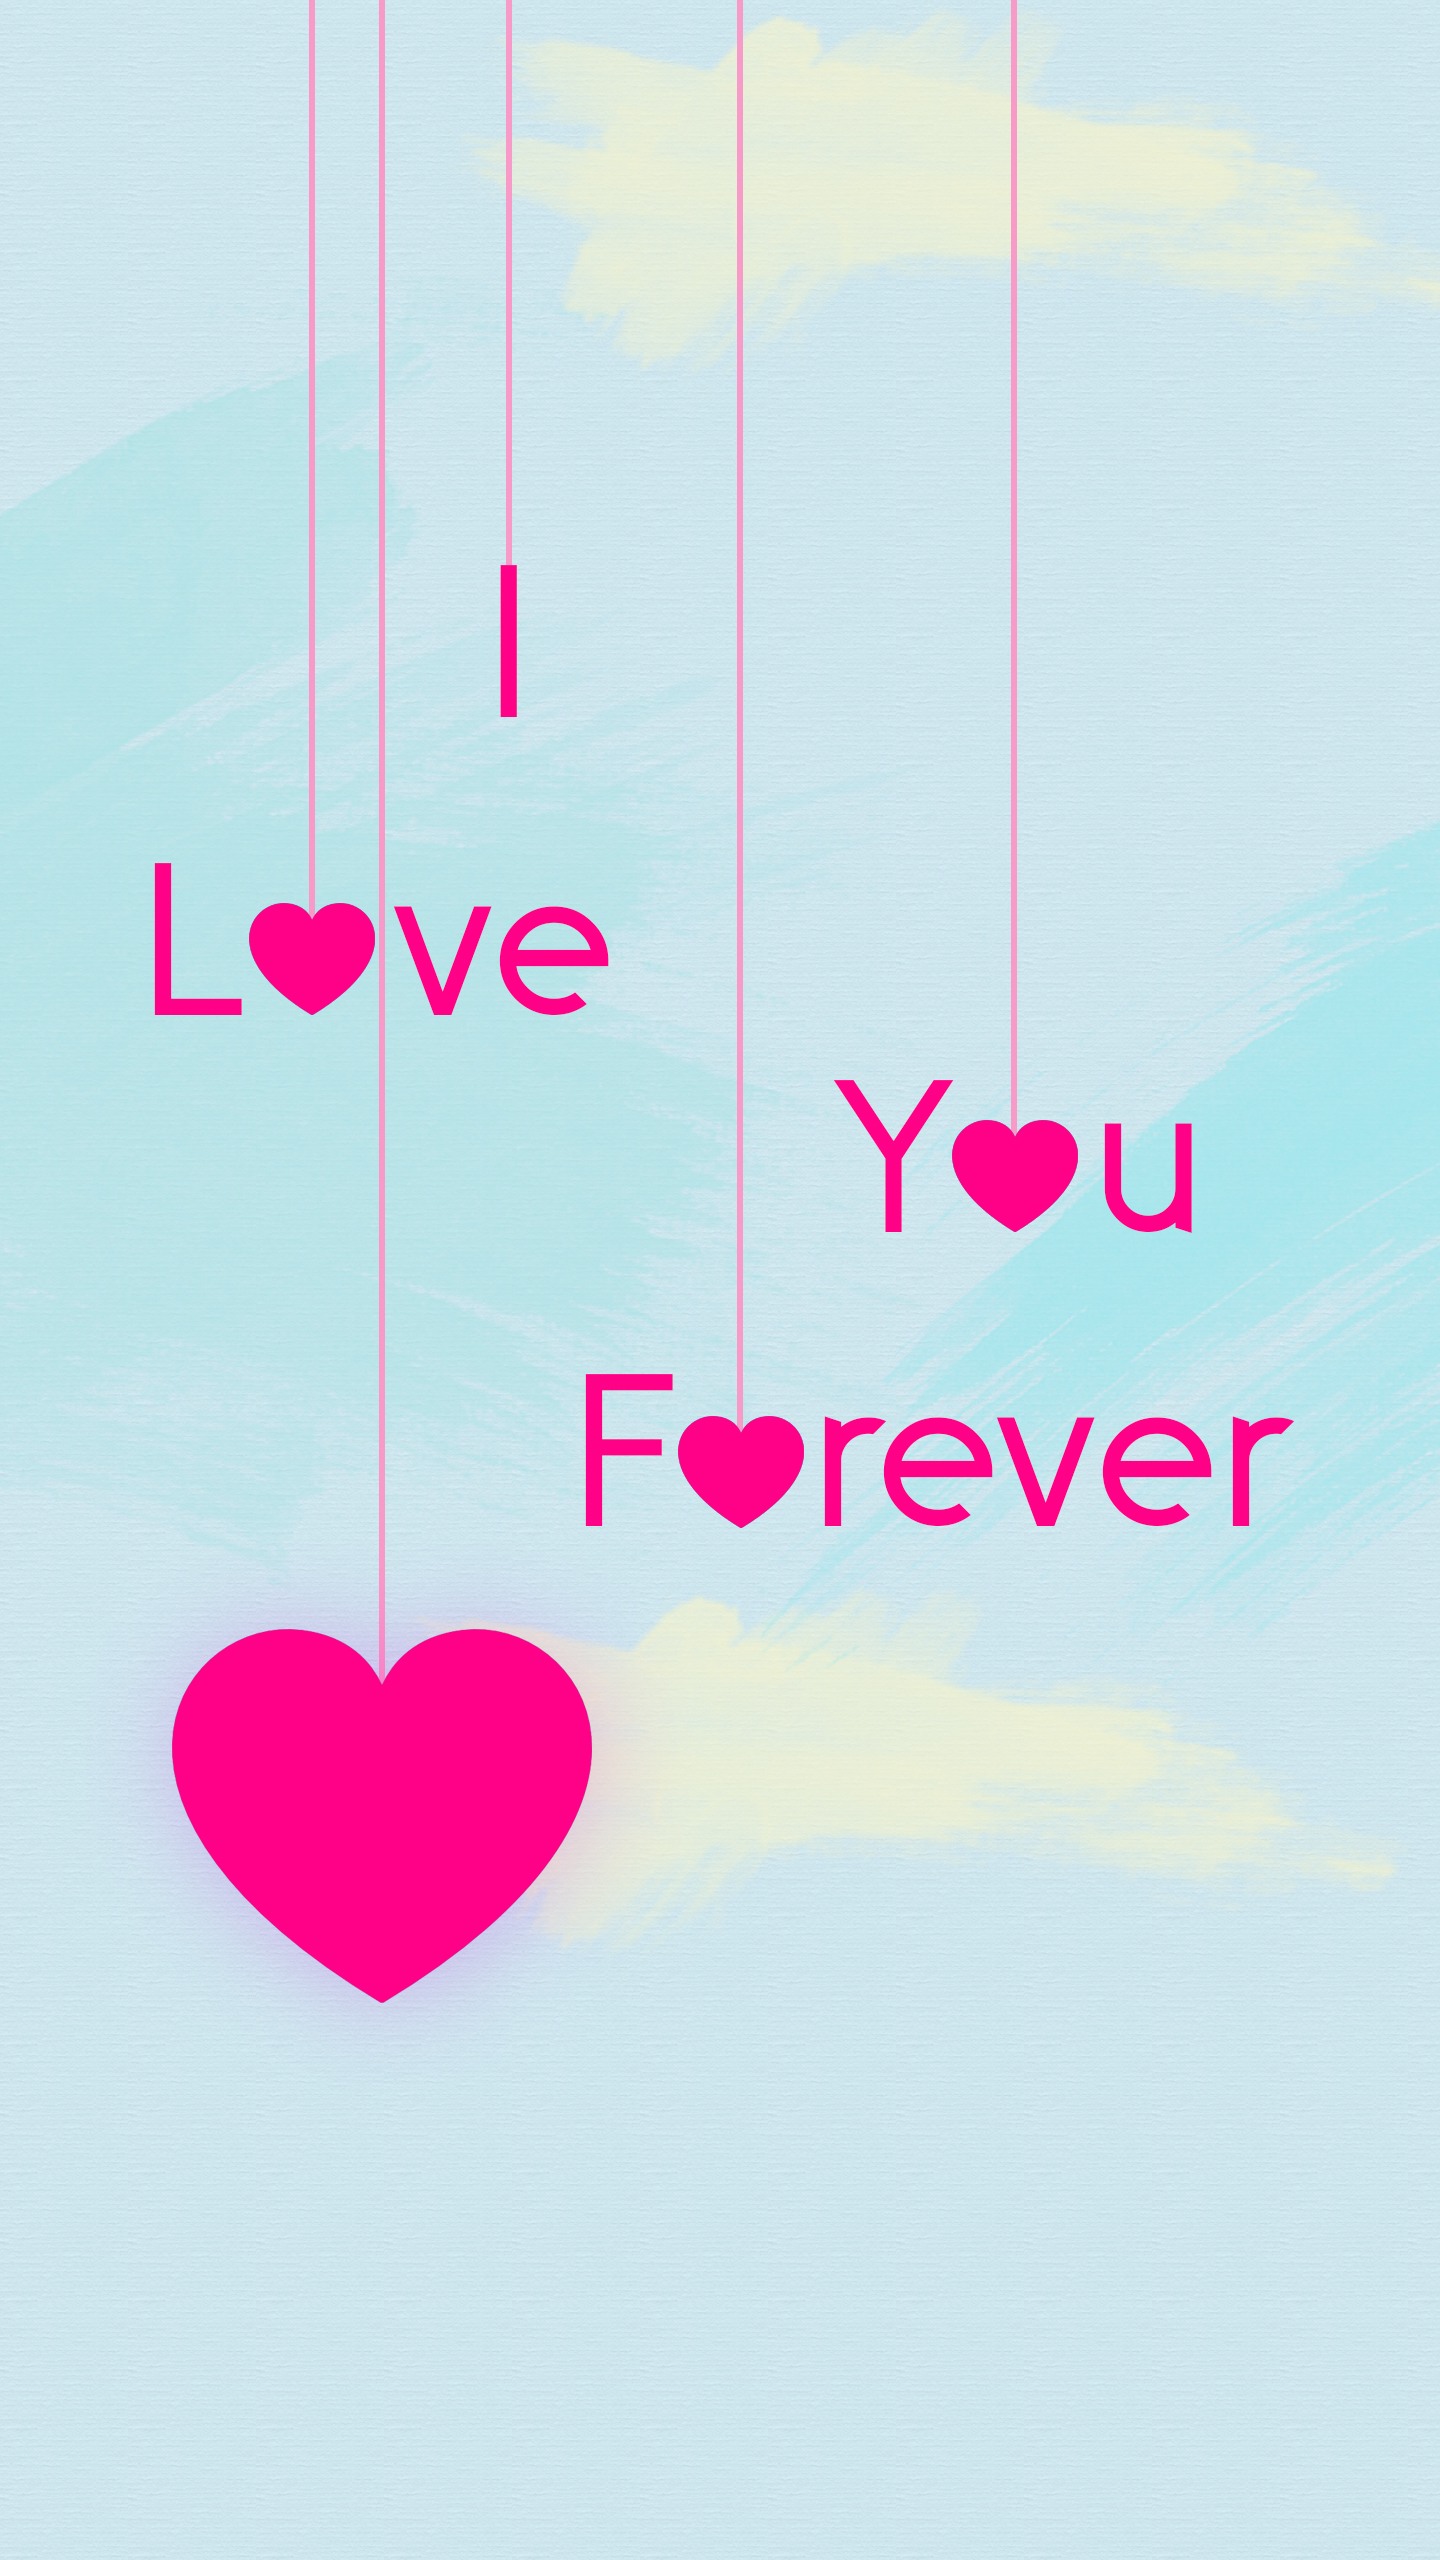 Wallpaper I Love You Photo : I Love You Forever Wallpapers Galaxy by Mattiebonez on DeviantArt